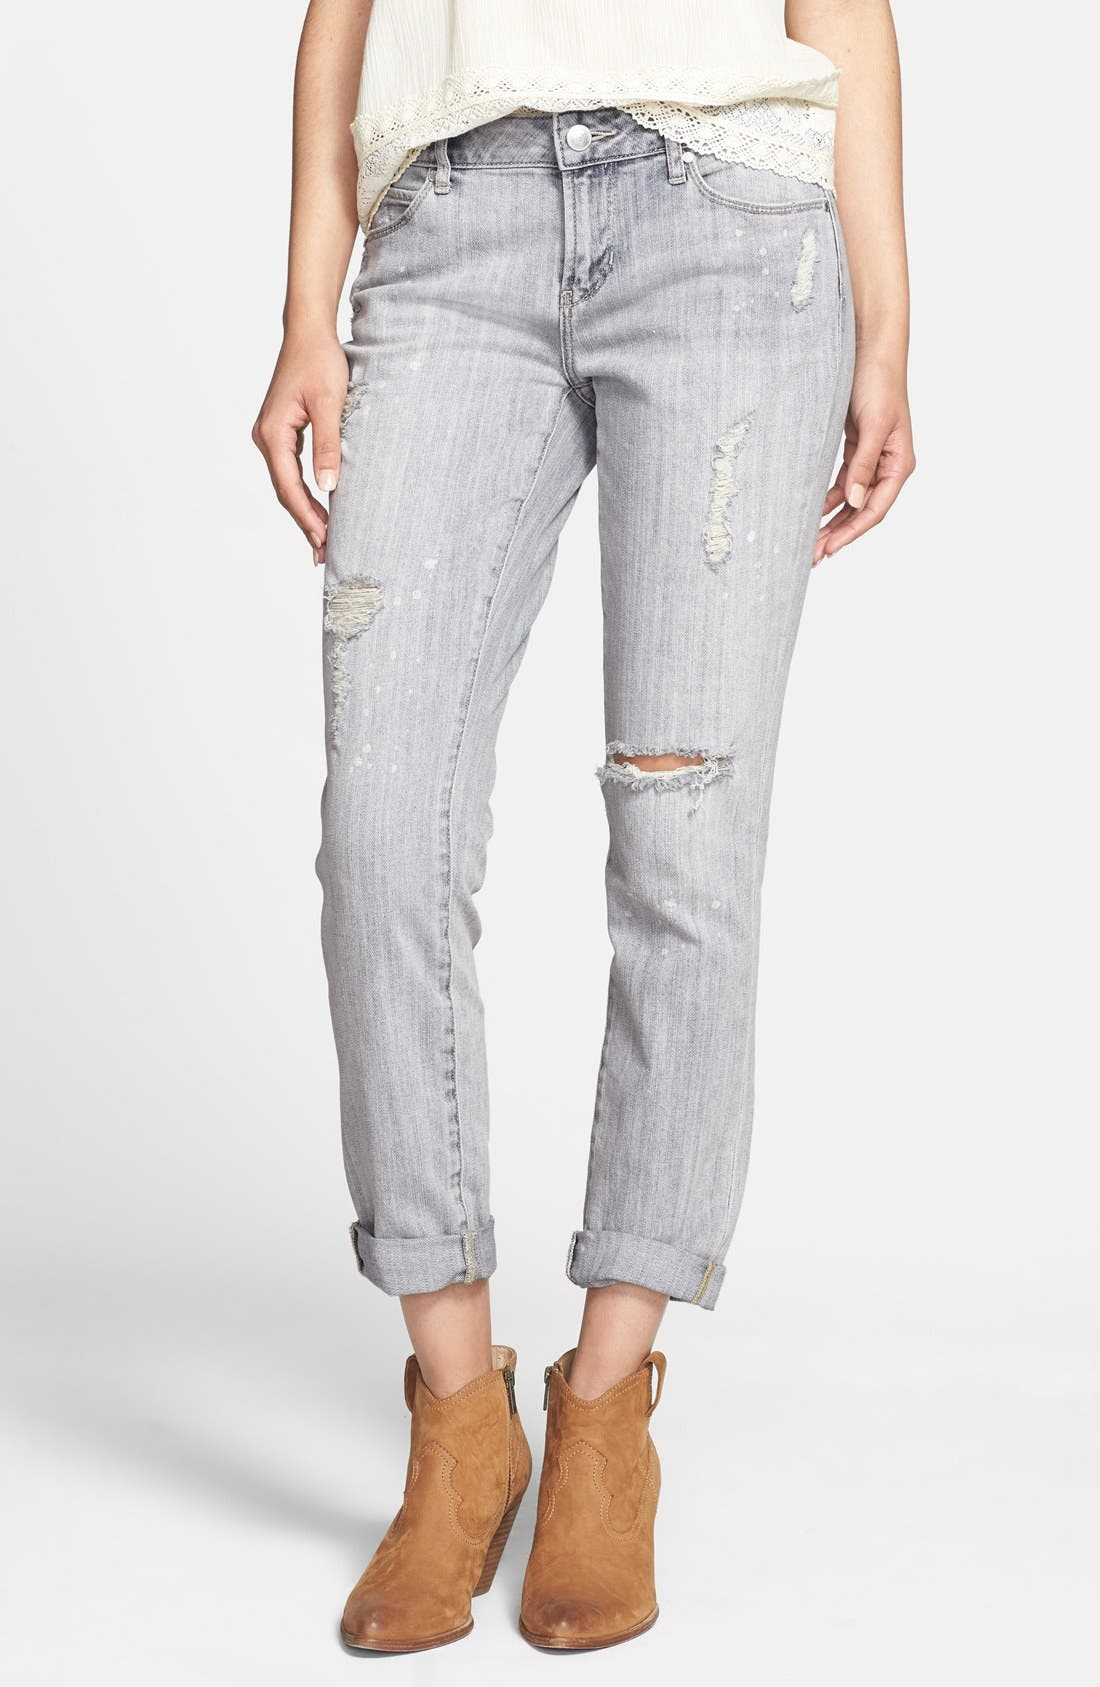 ARTICLES OF SOCIETY,                             'Cindy' Distressed Girlfriend Jeans,                             Main thumbnail 1, color,                             400